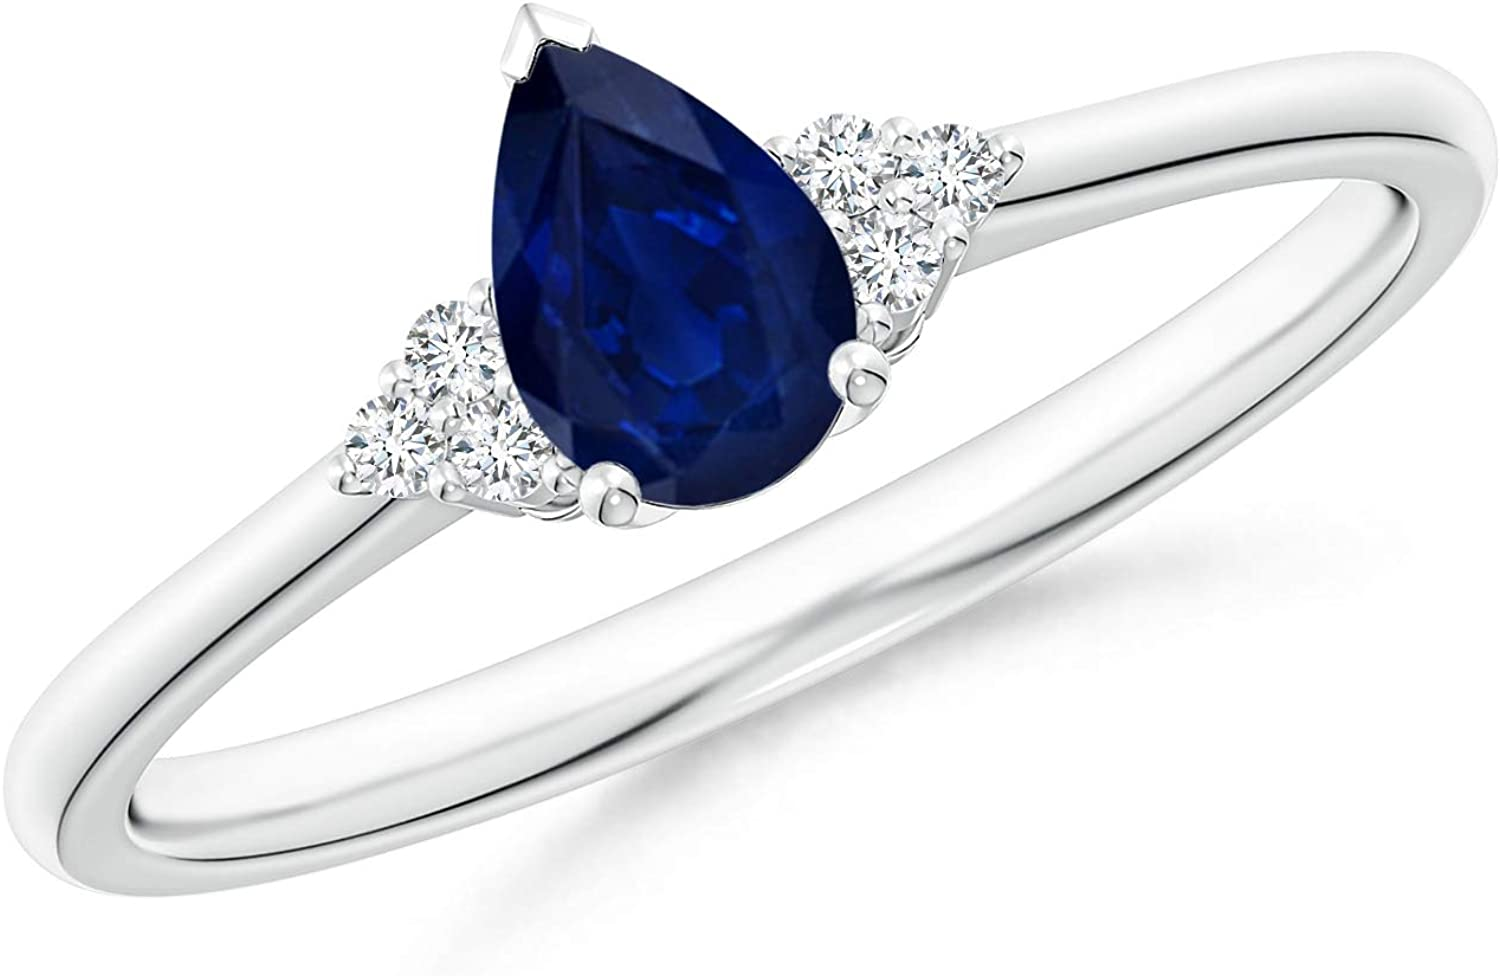 Pear Sapphire Solitaire Ring New Shipping Free Shipping with Diamond Trio Bl Finally popular brand 6x4mm Accents